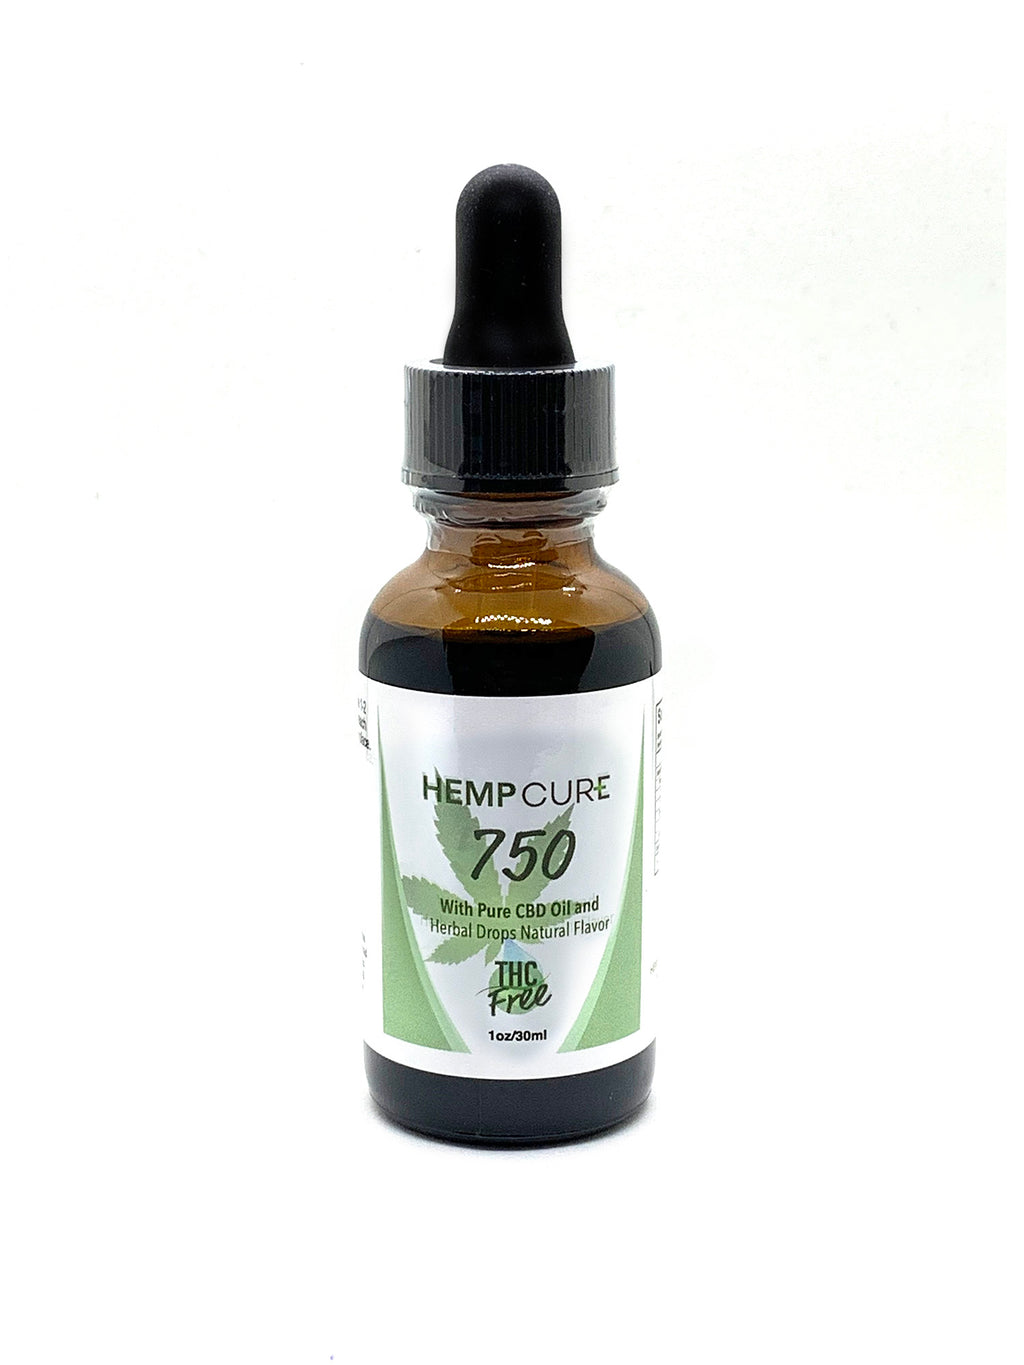 HempCure 750 Natural THC Free